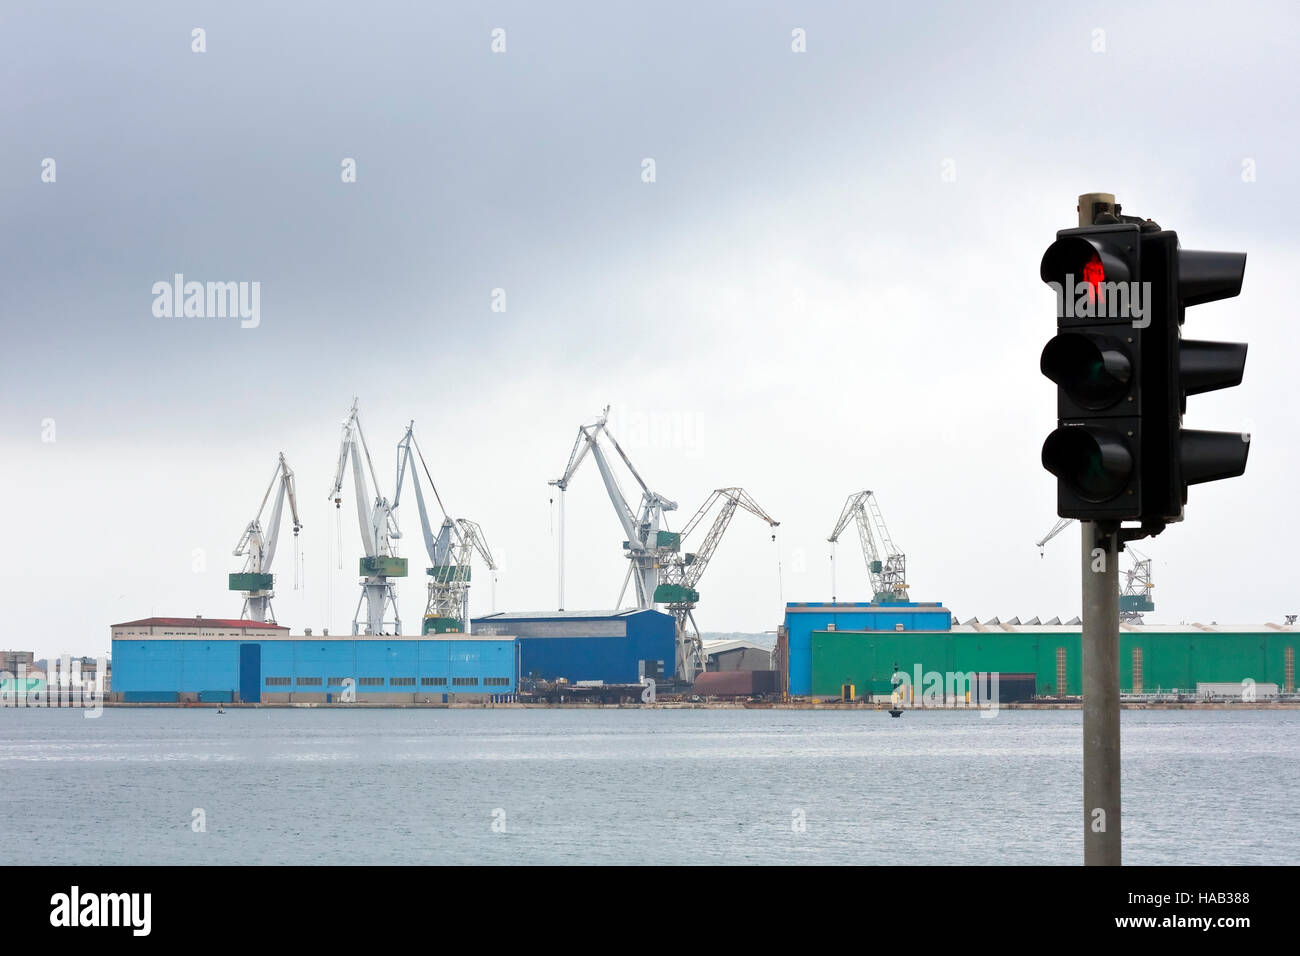 Still stand in ship industry with stoplight as symbol and dark clouds - Stock Image